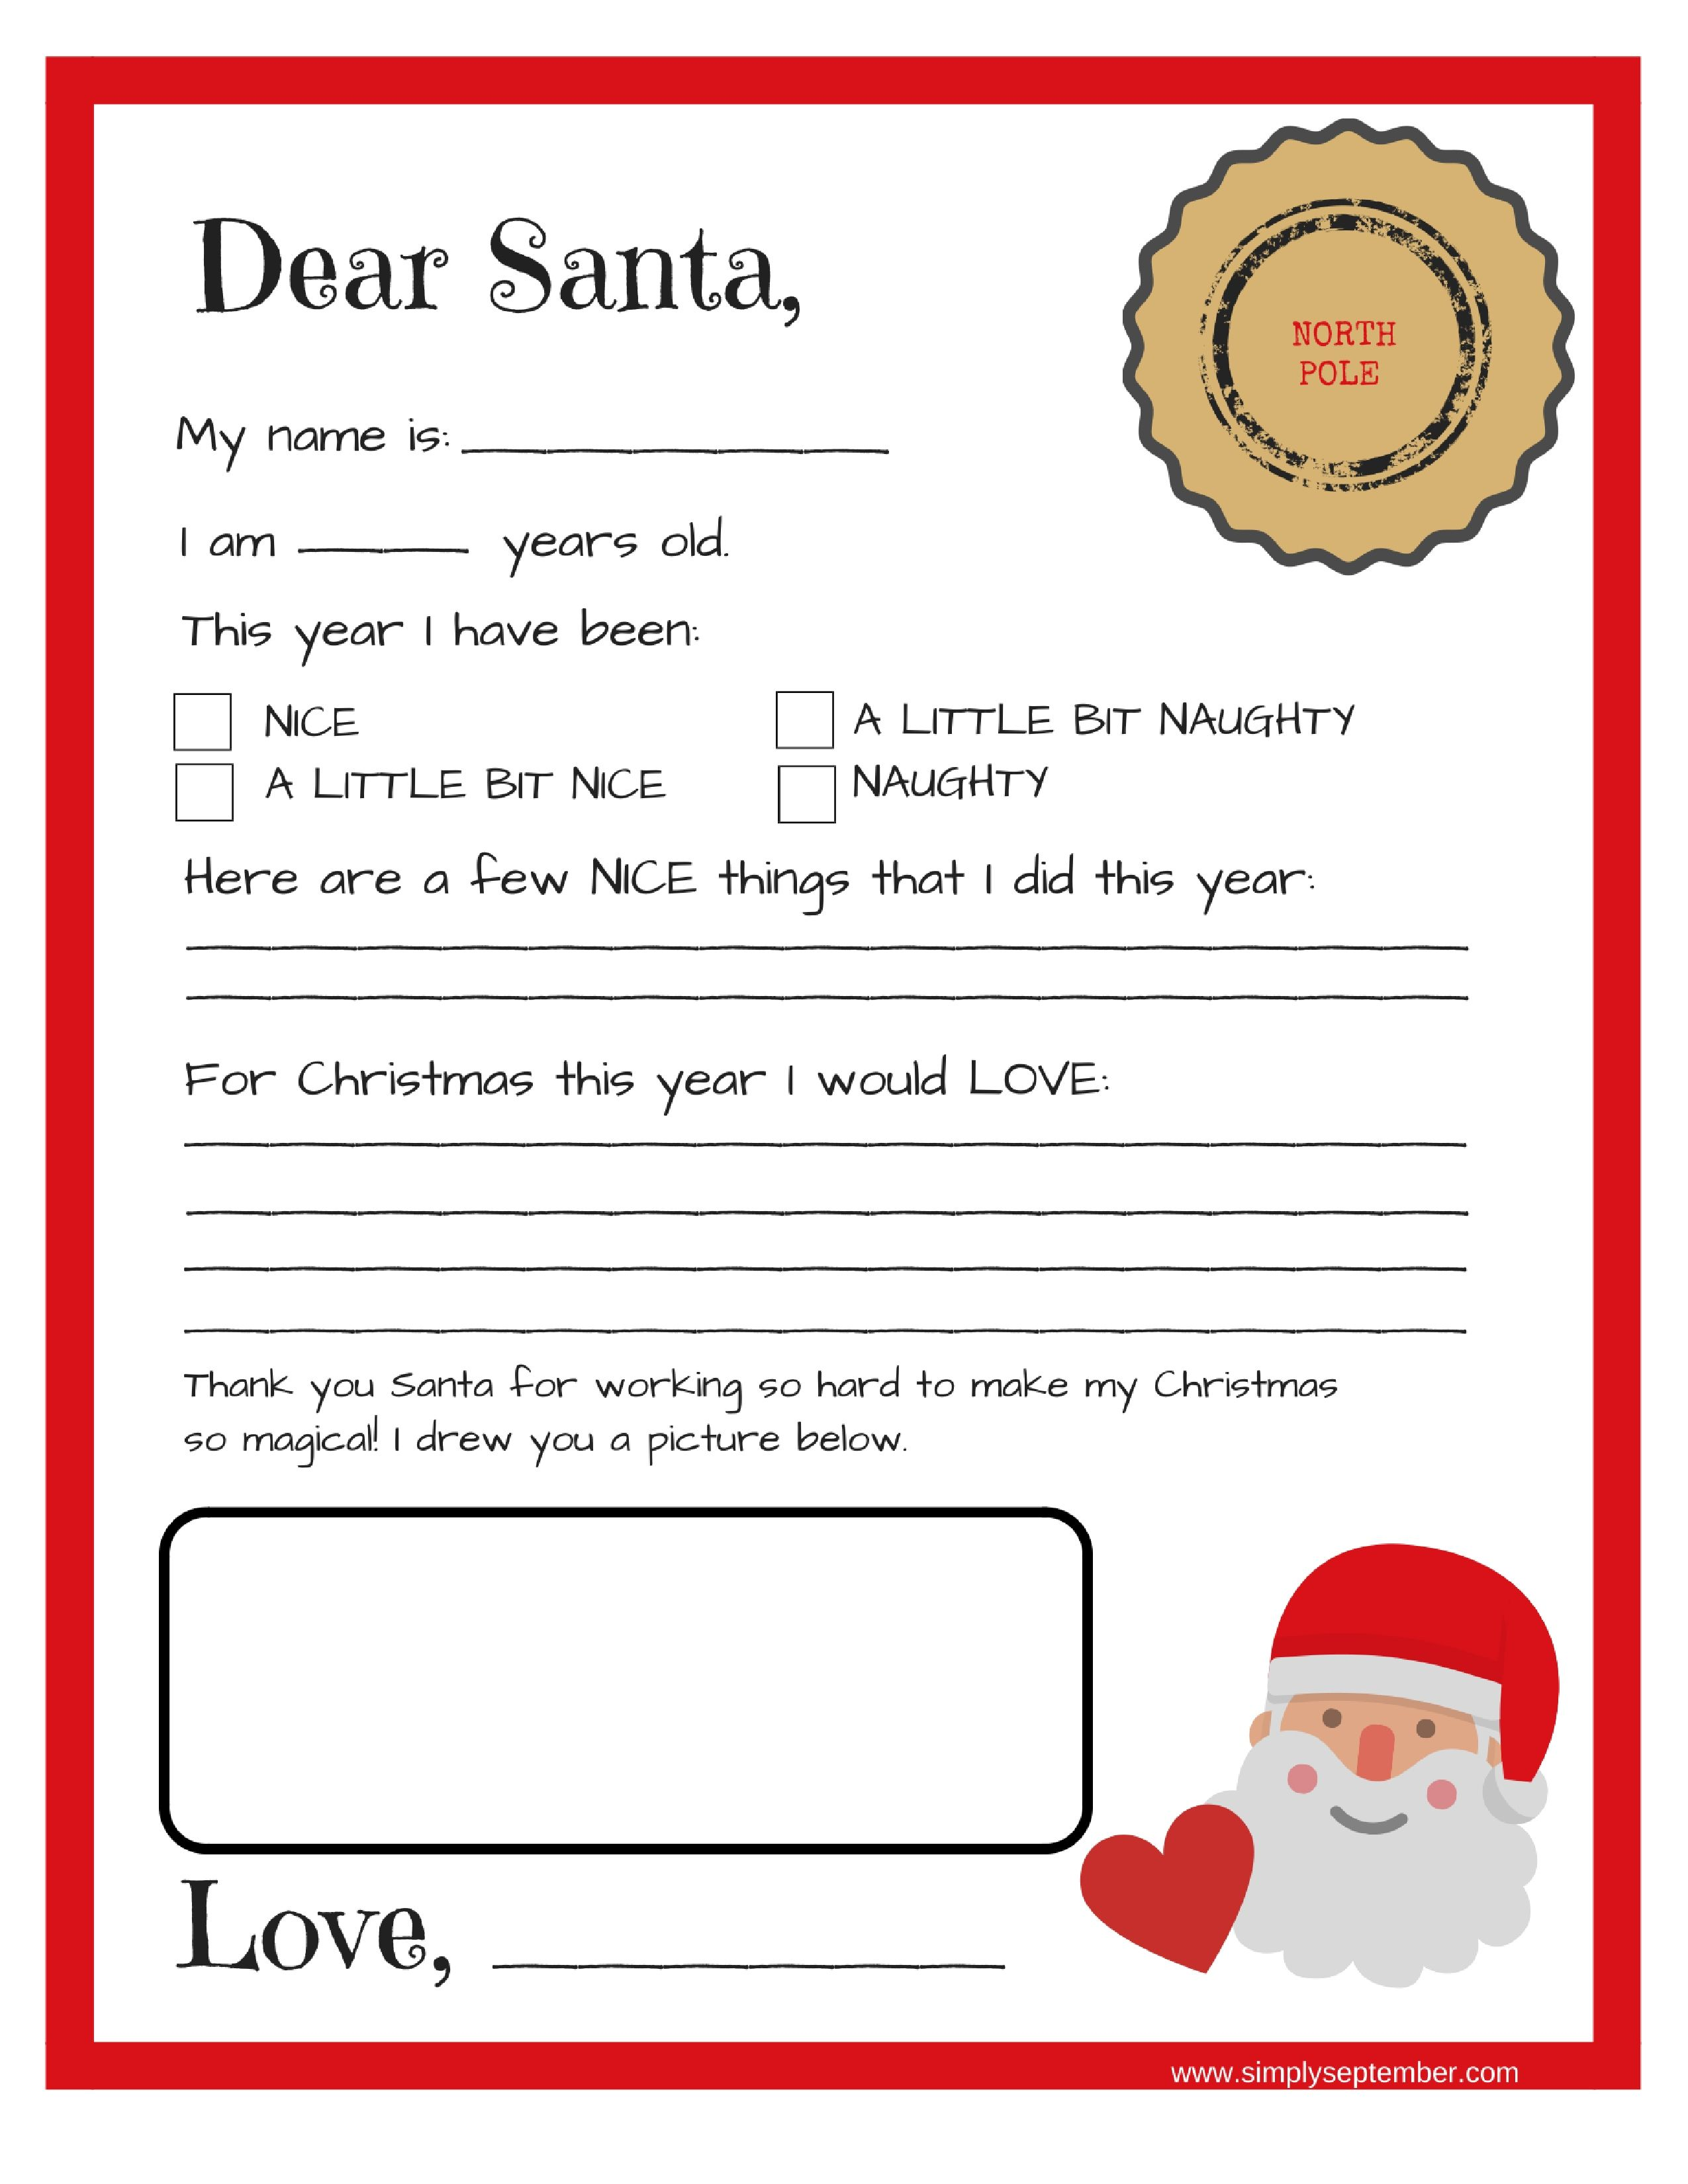 Letters To and From Santa Free Printables Santa letter